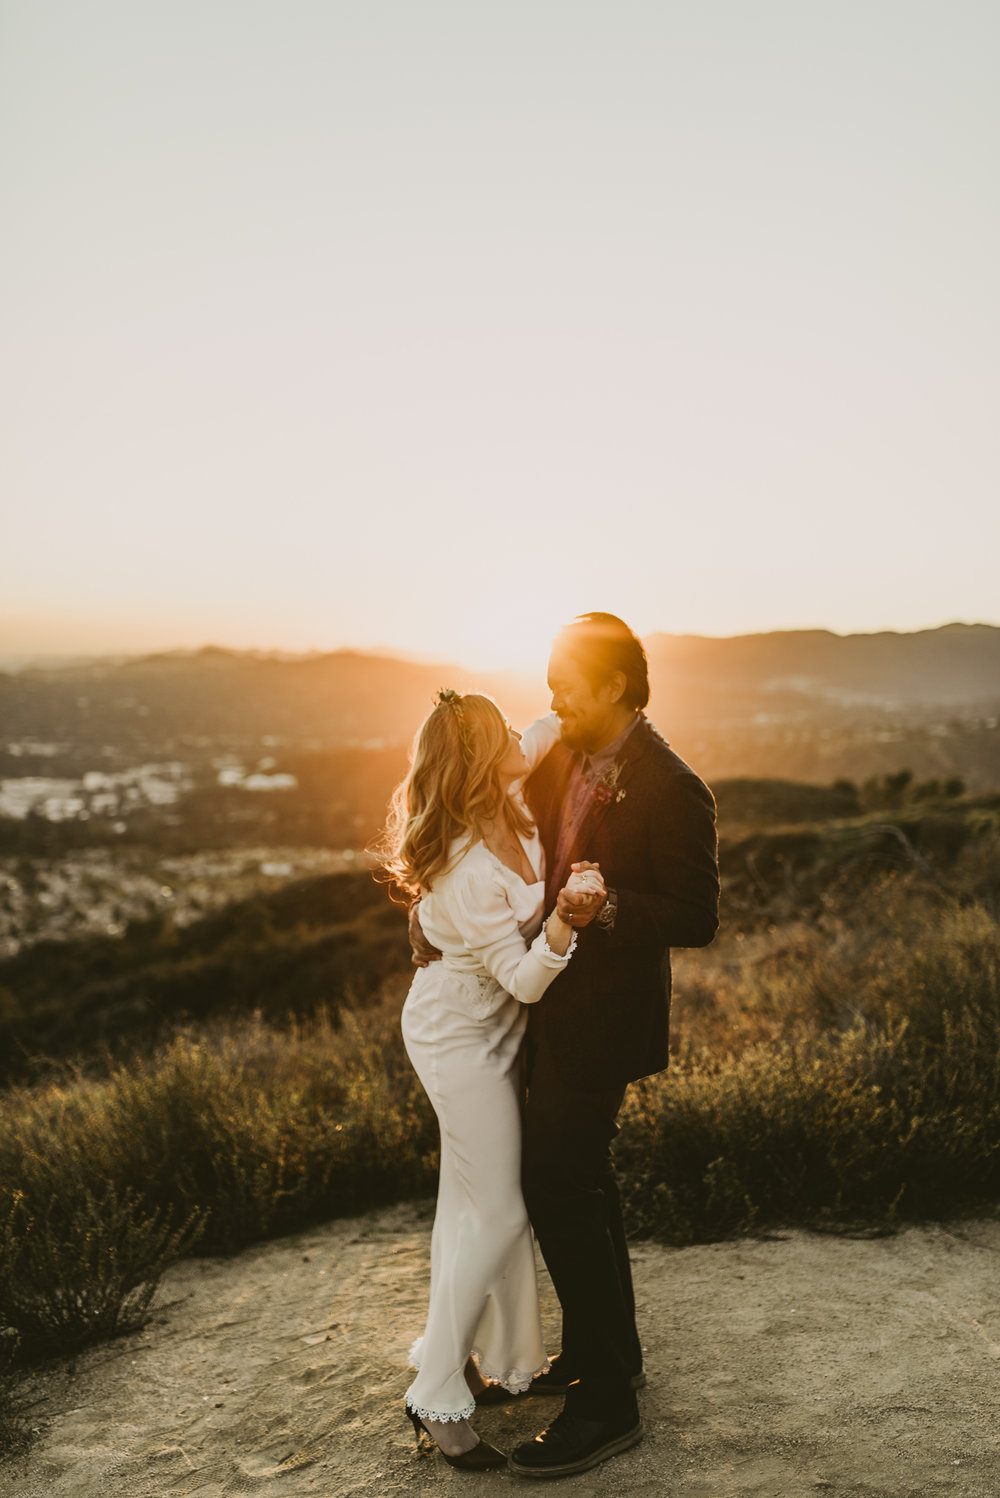 ©Isaiah + Taylor Photography - Intimate Elopement, Eaton Canyon, Los Angeles Wedding Photographer-99.jpg